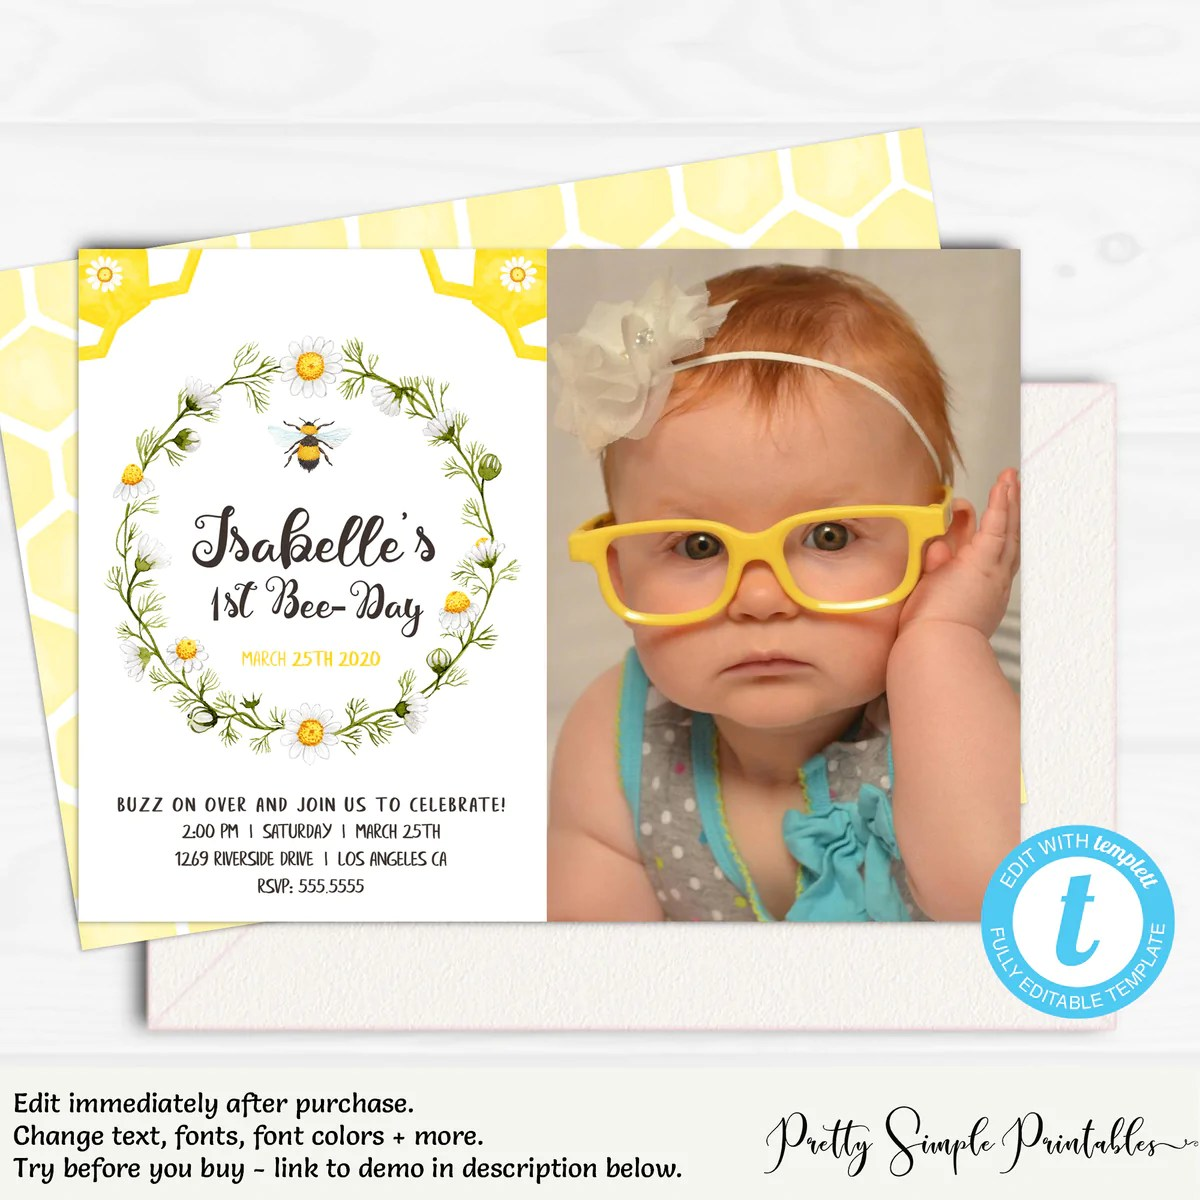 photo invitation 1st bee day invitation bee1 pretty simple printables